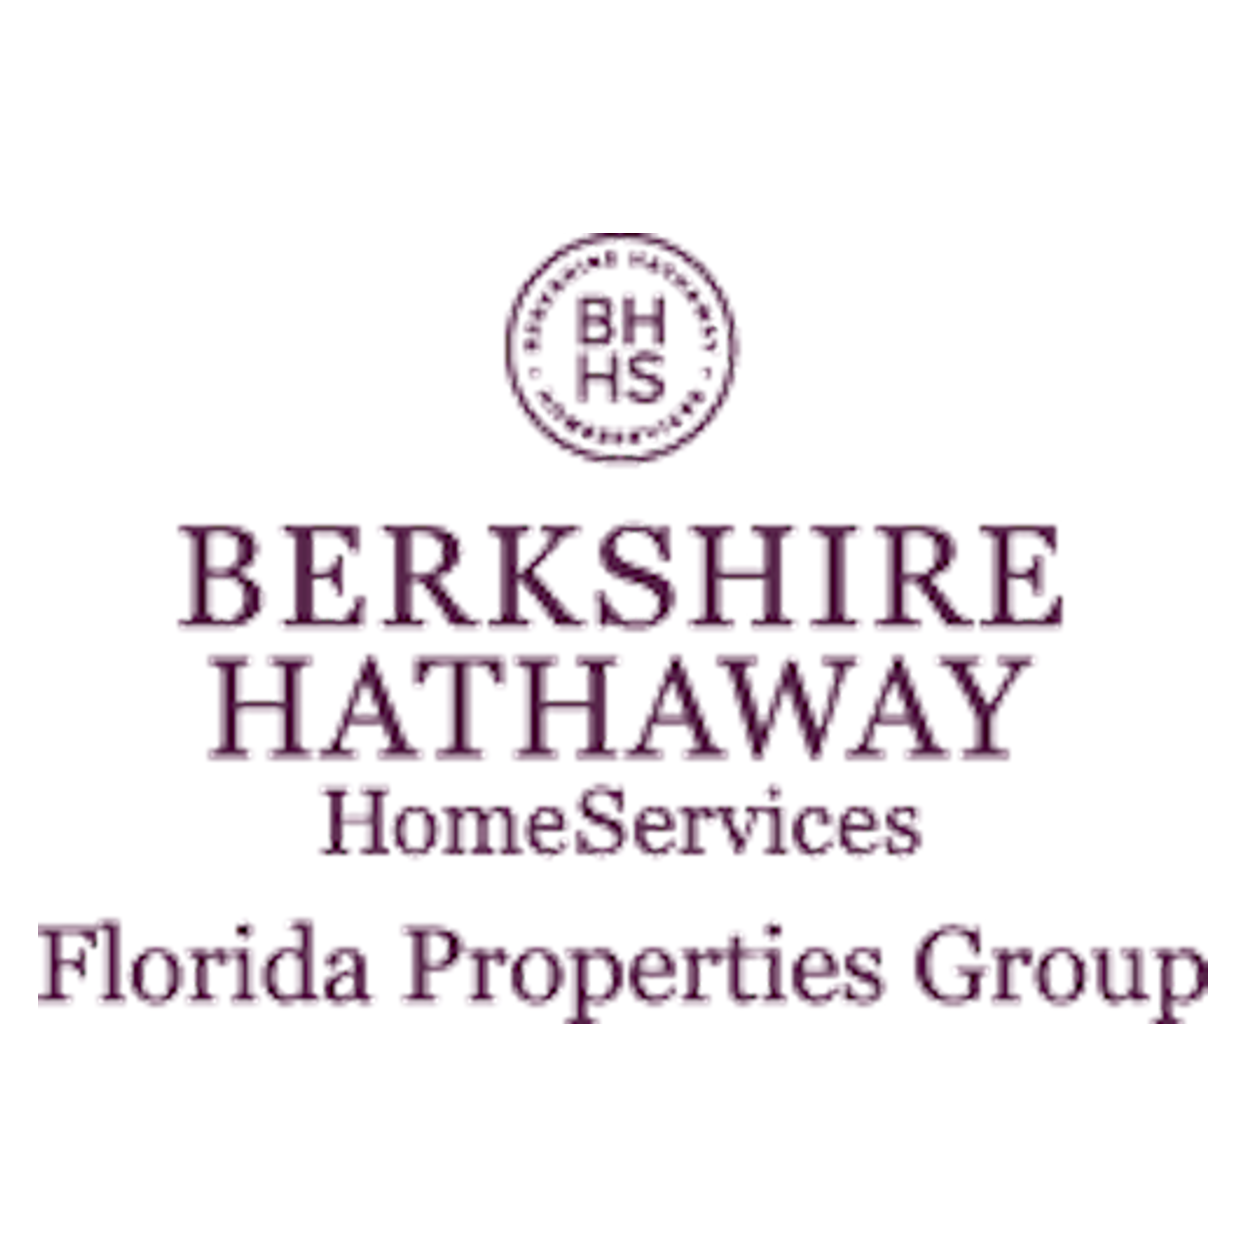 Connie Young - BHHS Florida Properties Group